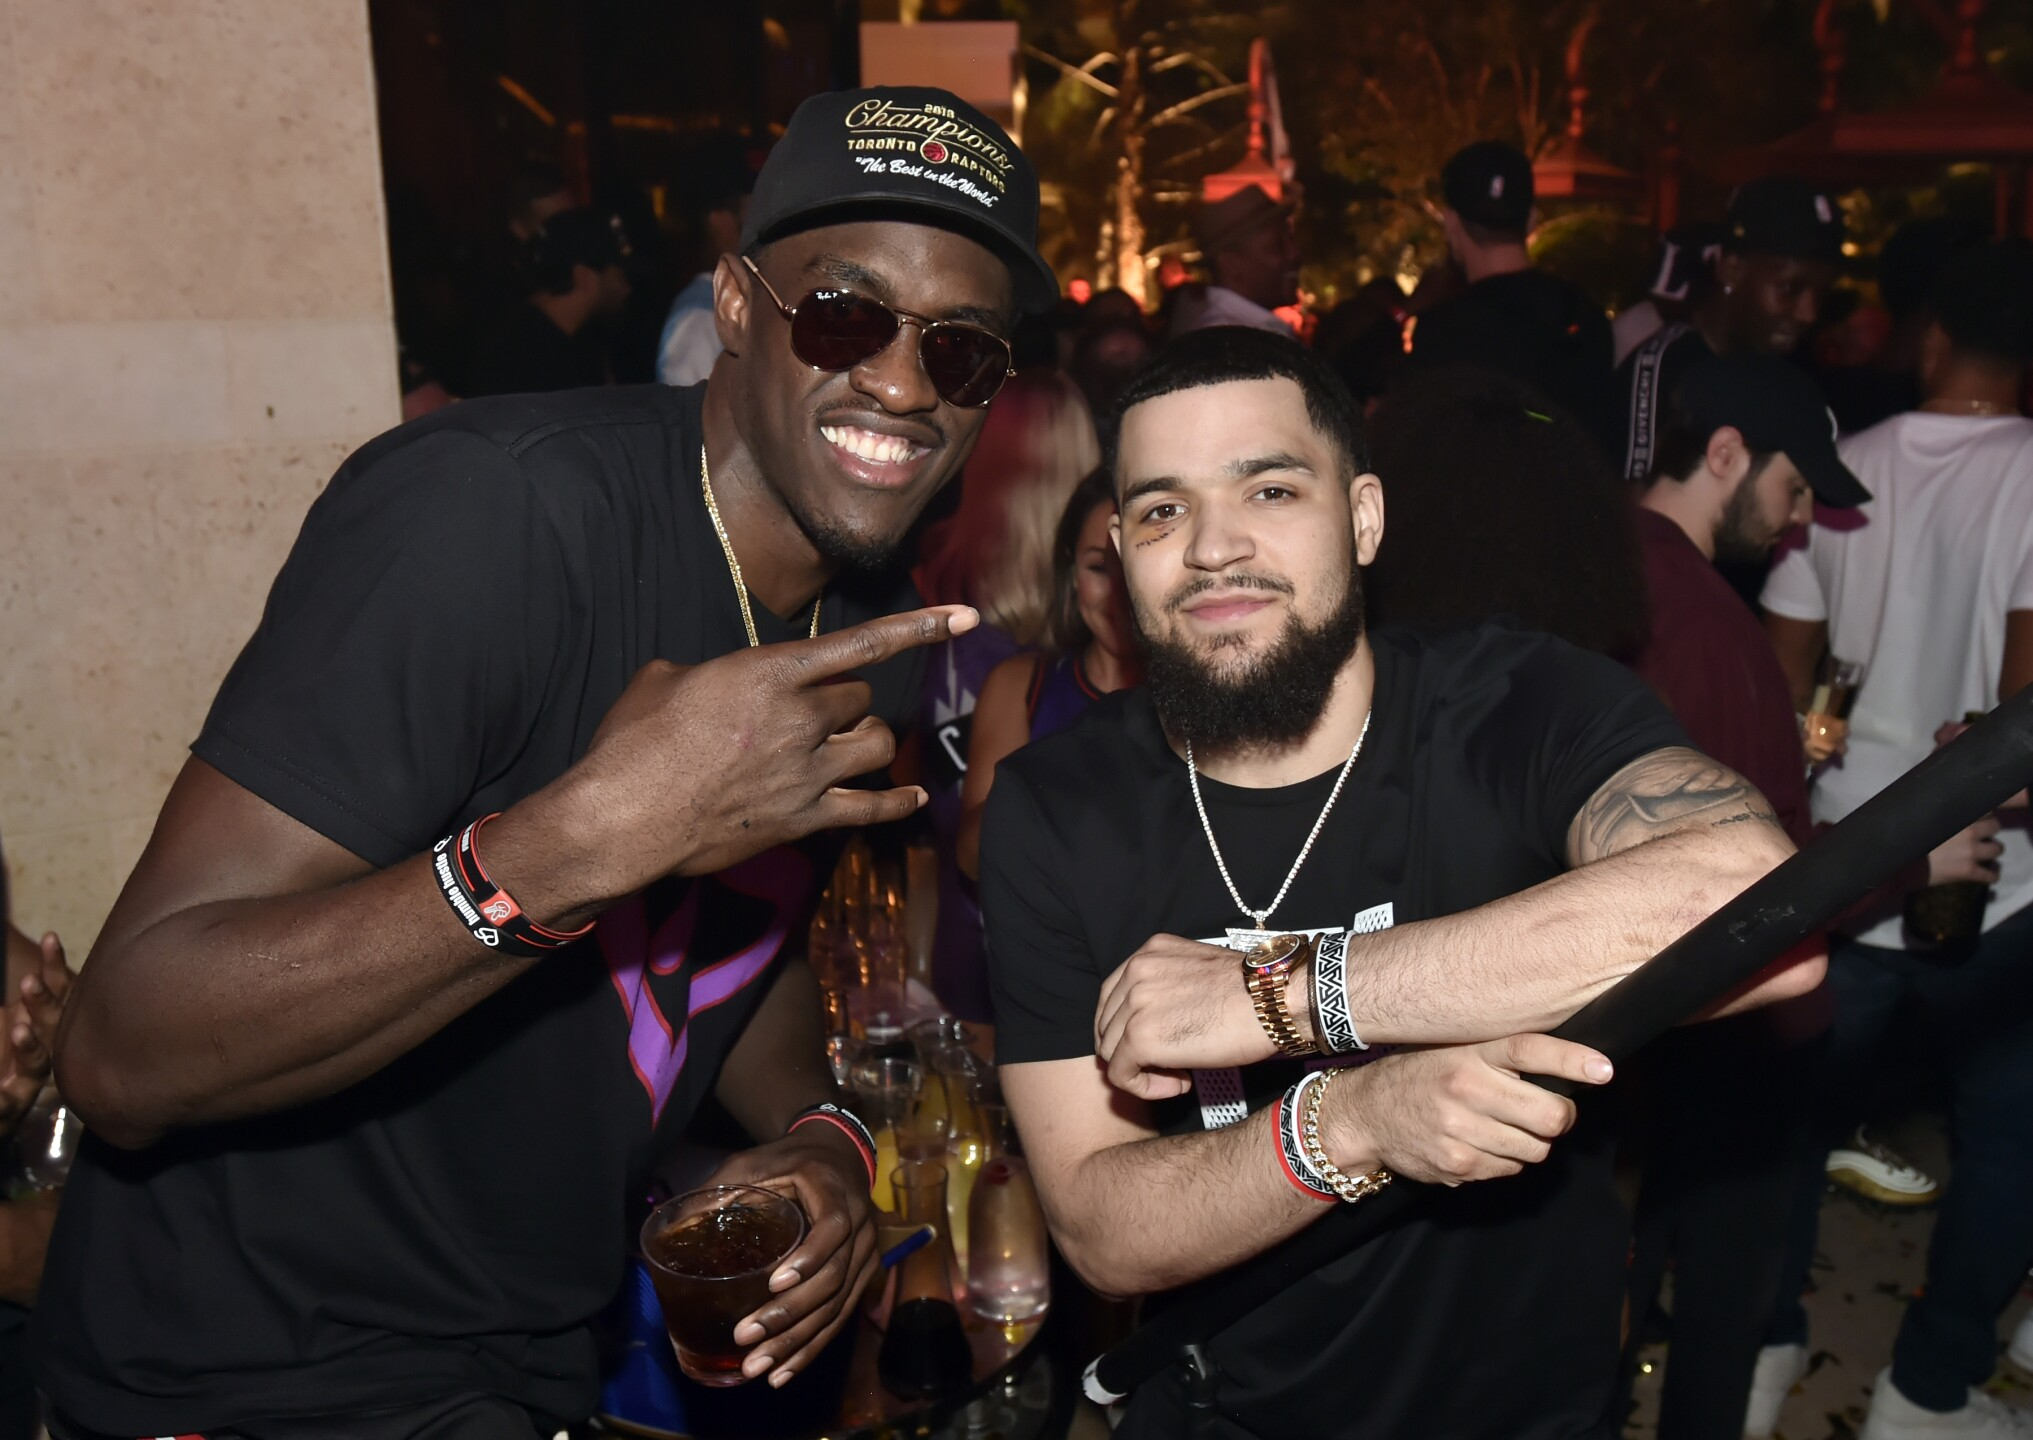 The Toronto Raptors Head To Wynn Las Vegas To Celebrate NBA Championship Win At XS Nightclub With Drake And The Chainsmokers